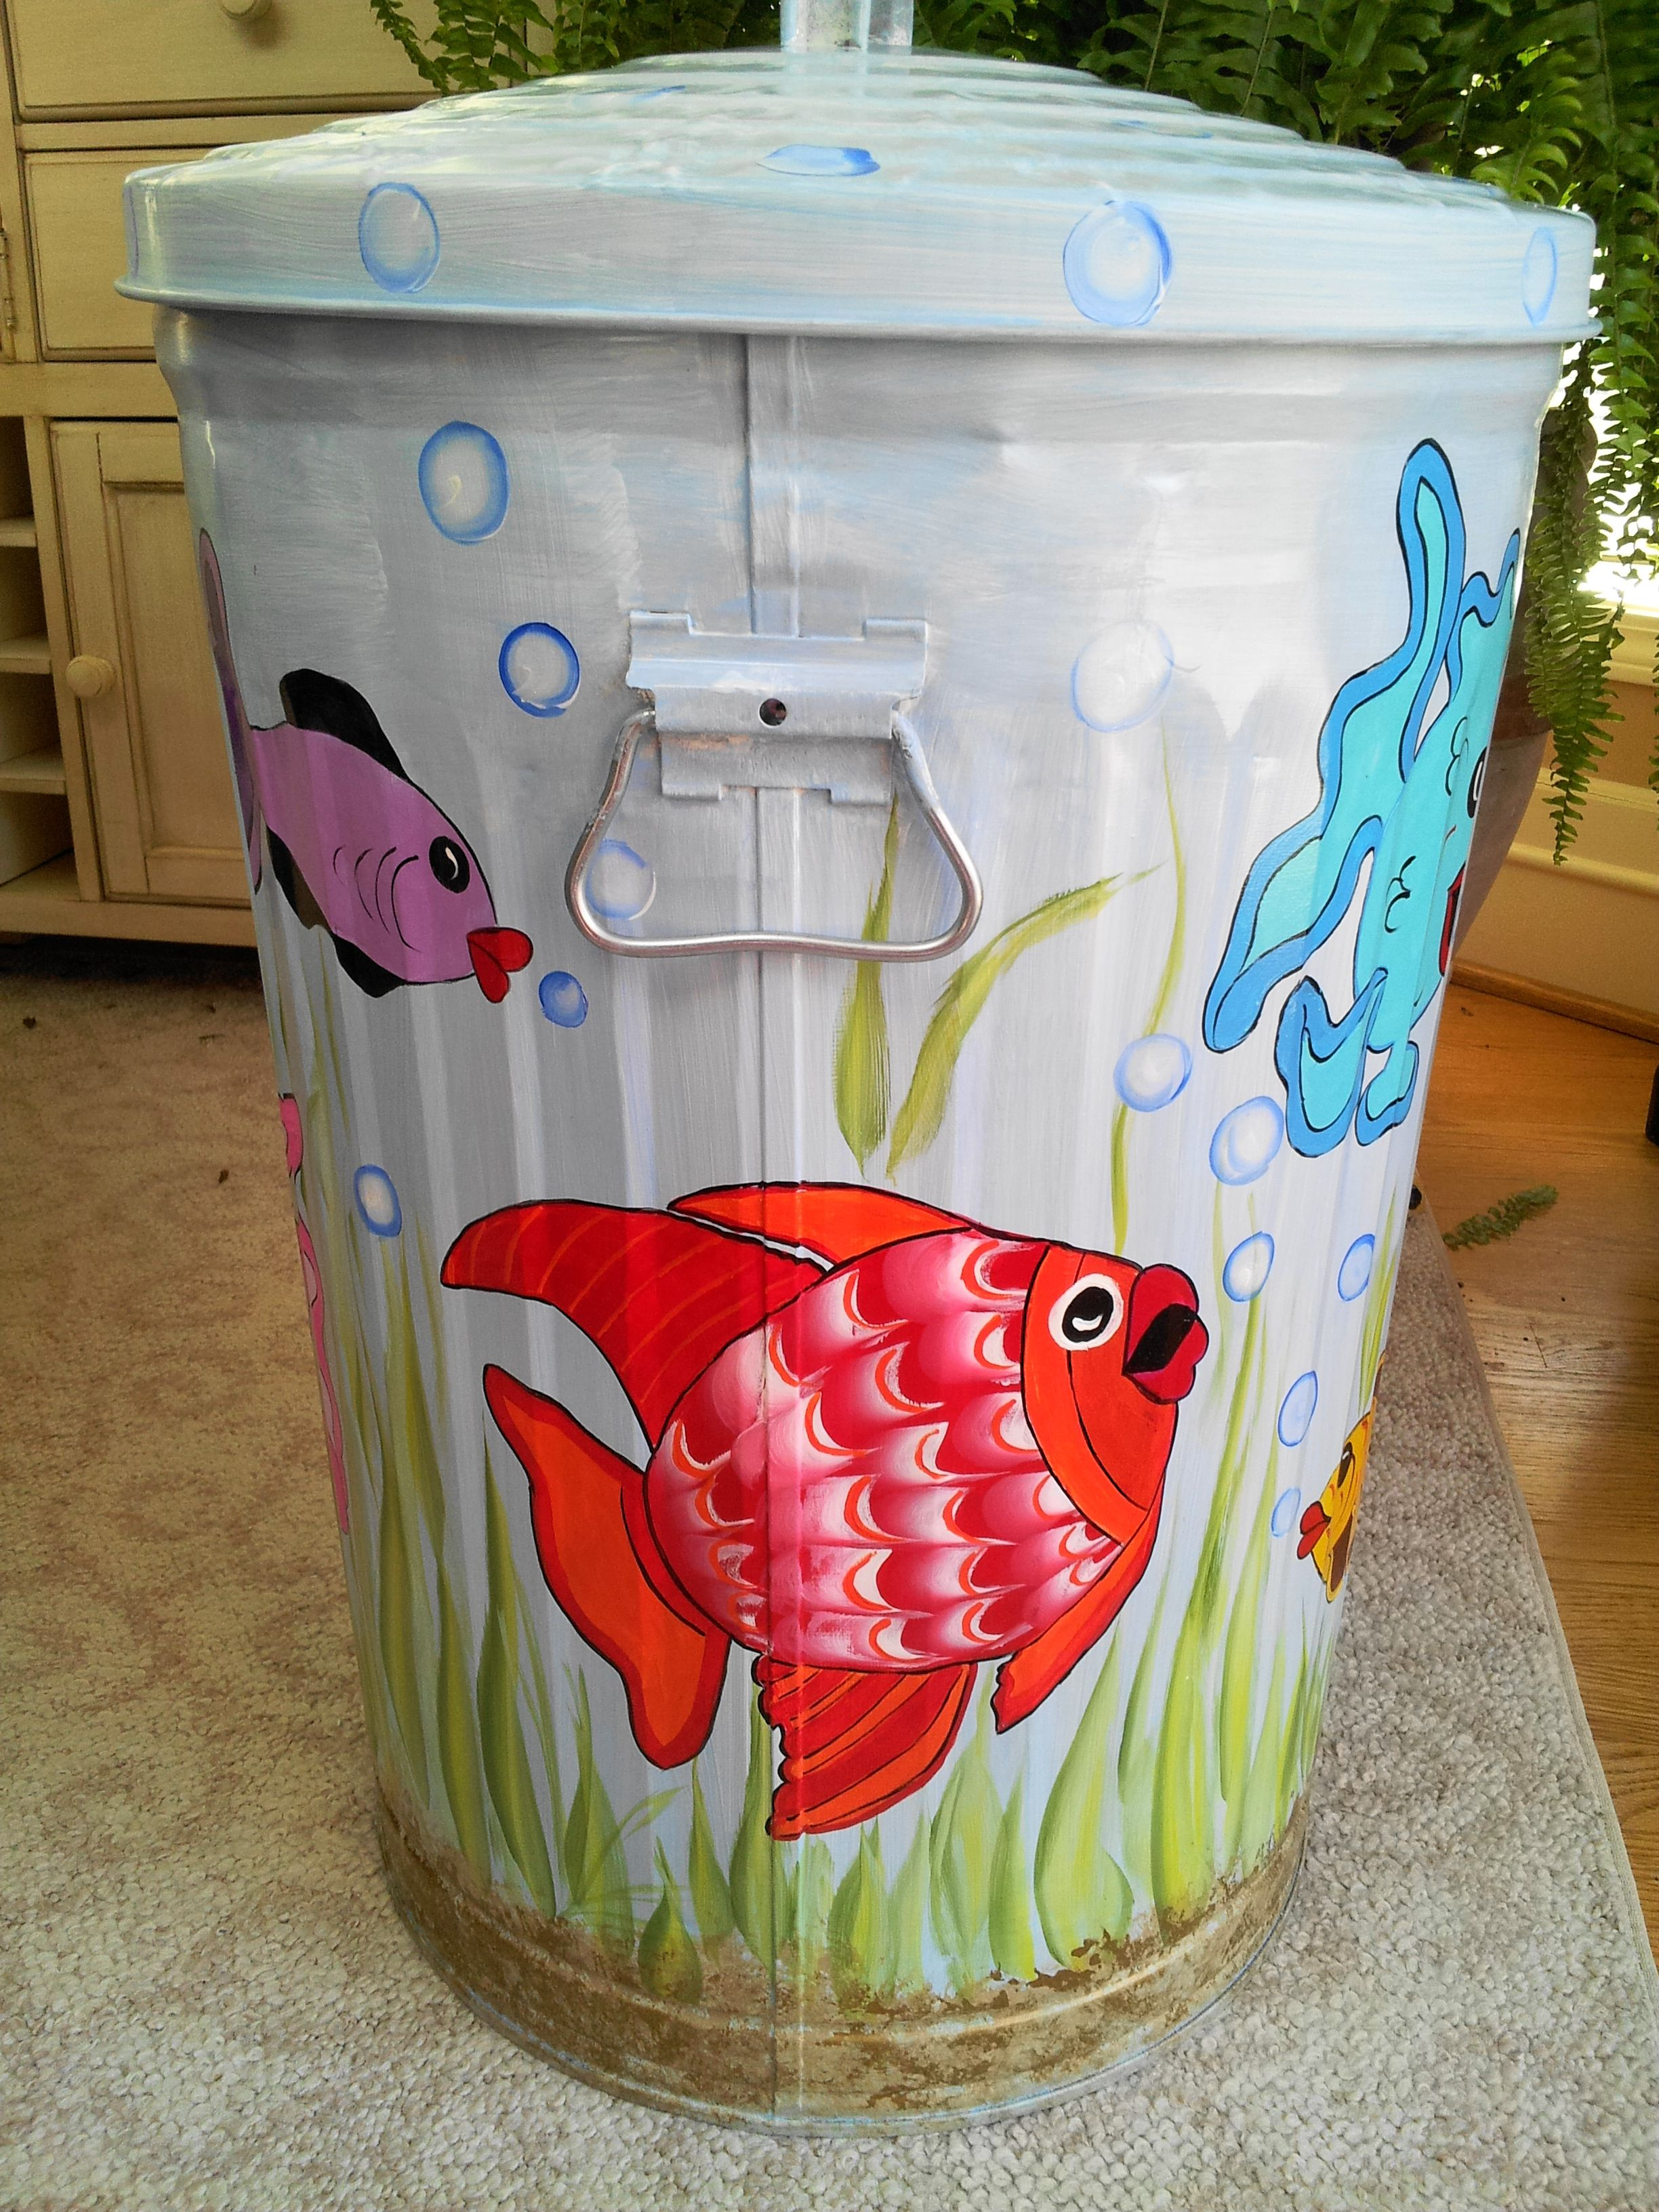 kitchen cans dino trash bathroom lid decor retro lids bedroom waste dinosaur wayfair love with circo youll decorative basket target plastic outdoor gallon red can to liter for baskets walmart metalla umbra wastebasket